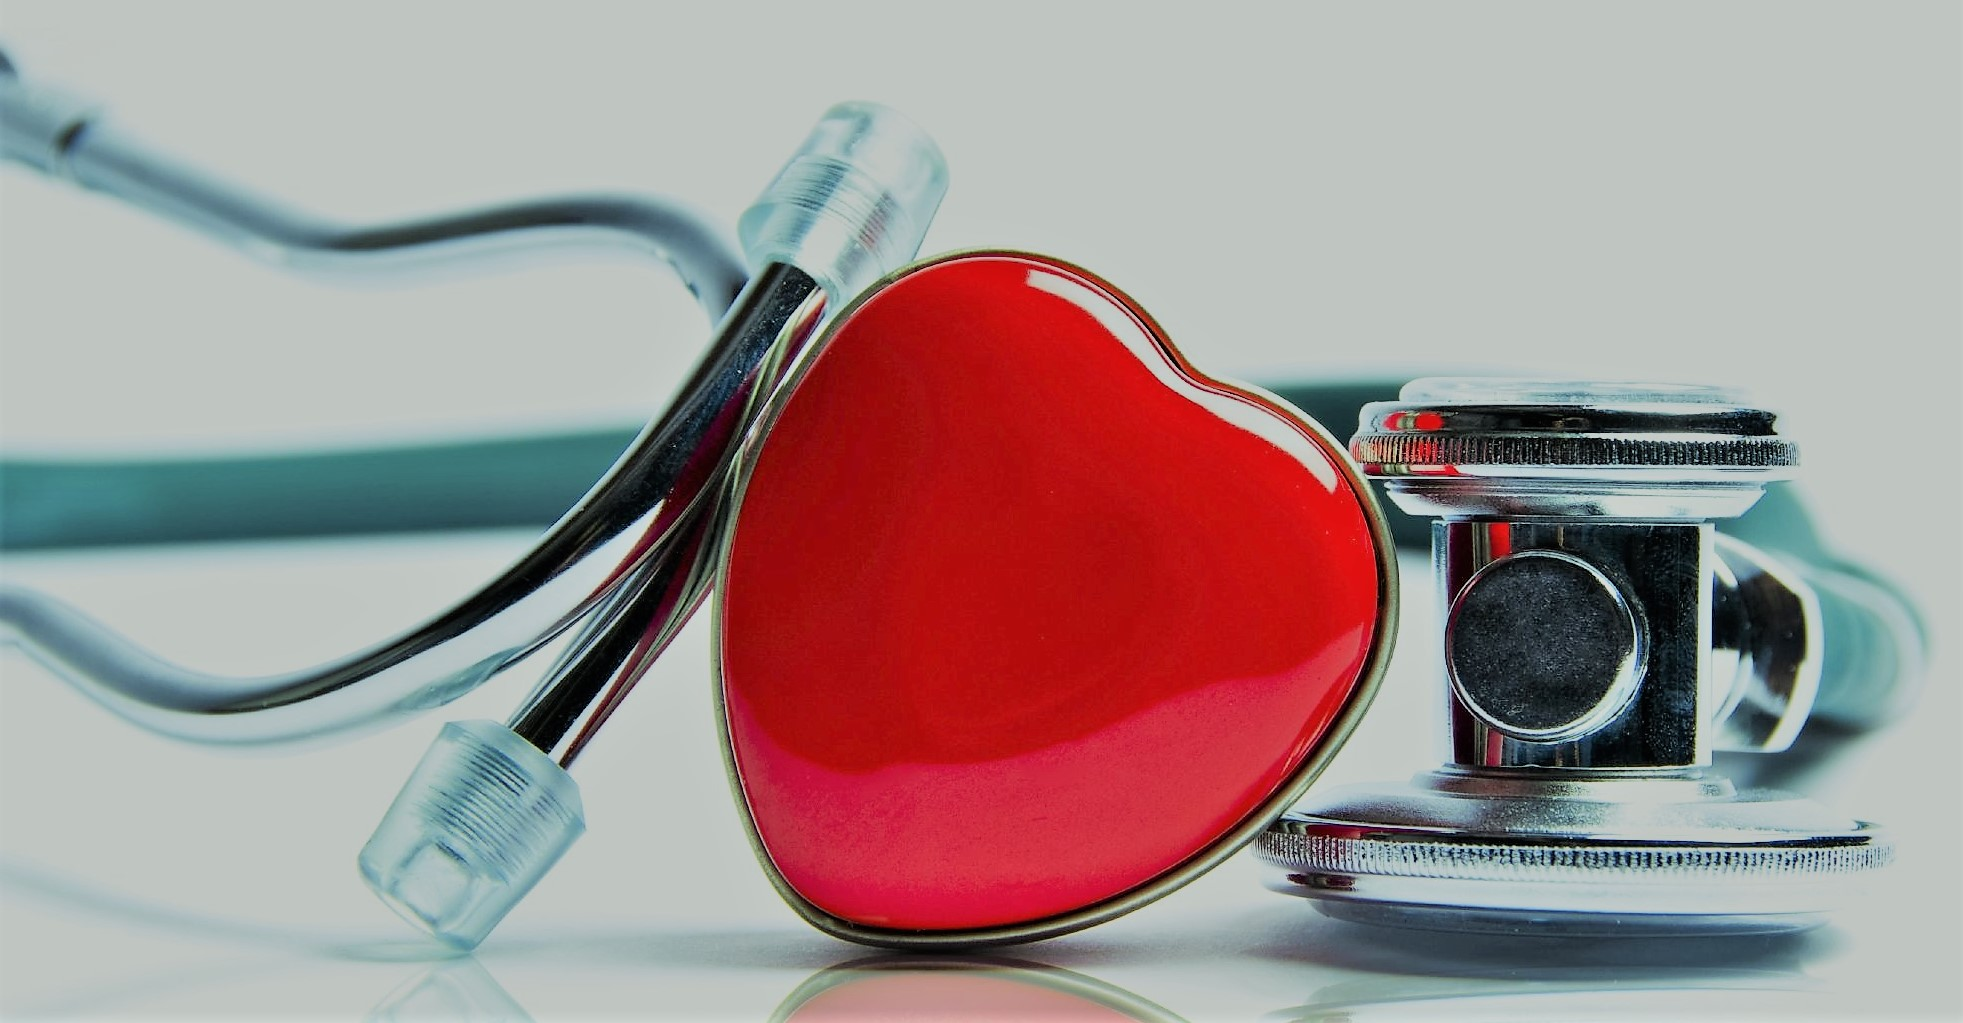 A red, plastic heart in the center of the photograph with a doctor's stethoscope leaning up against it and wrapping around.